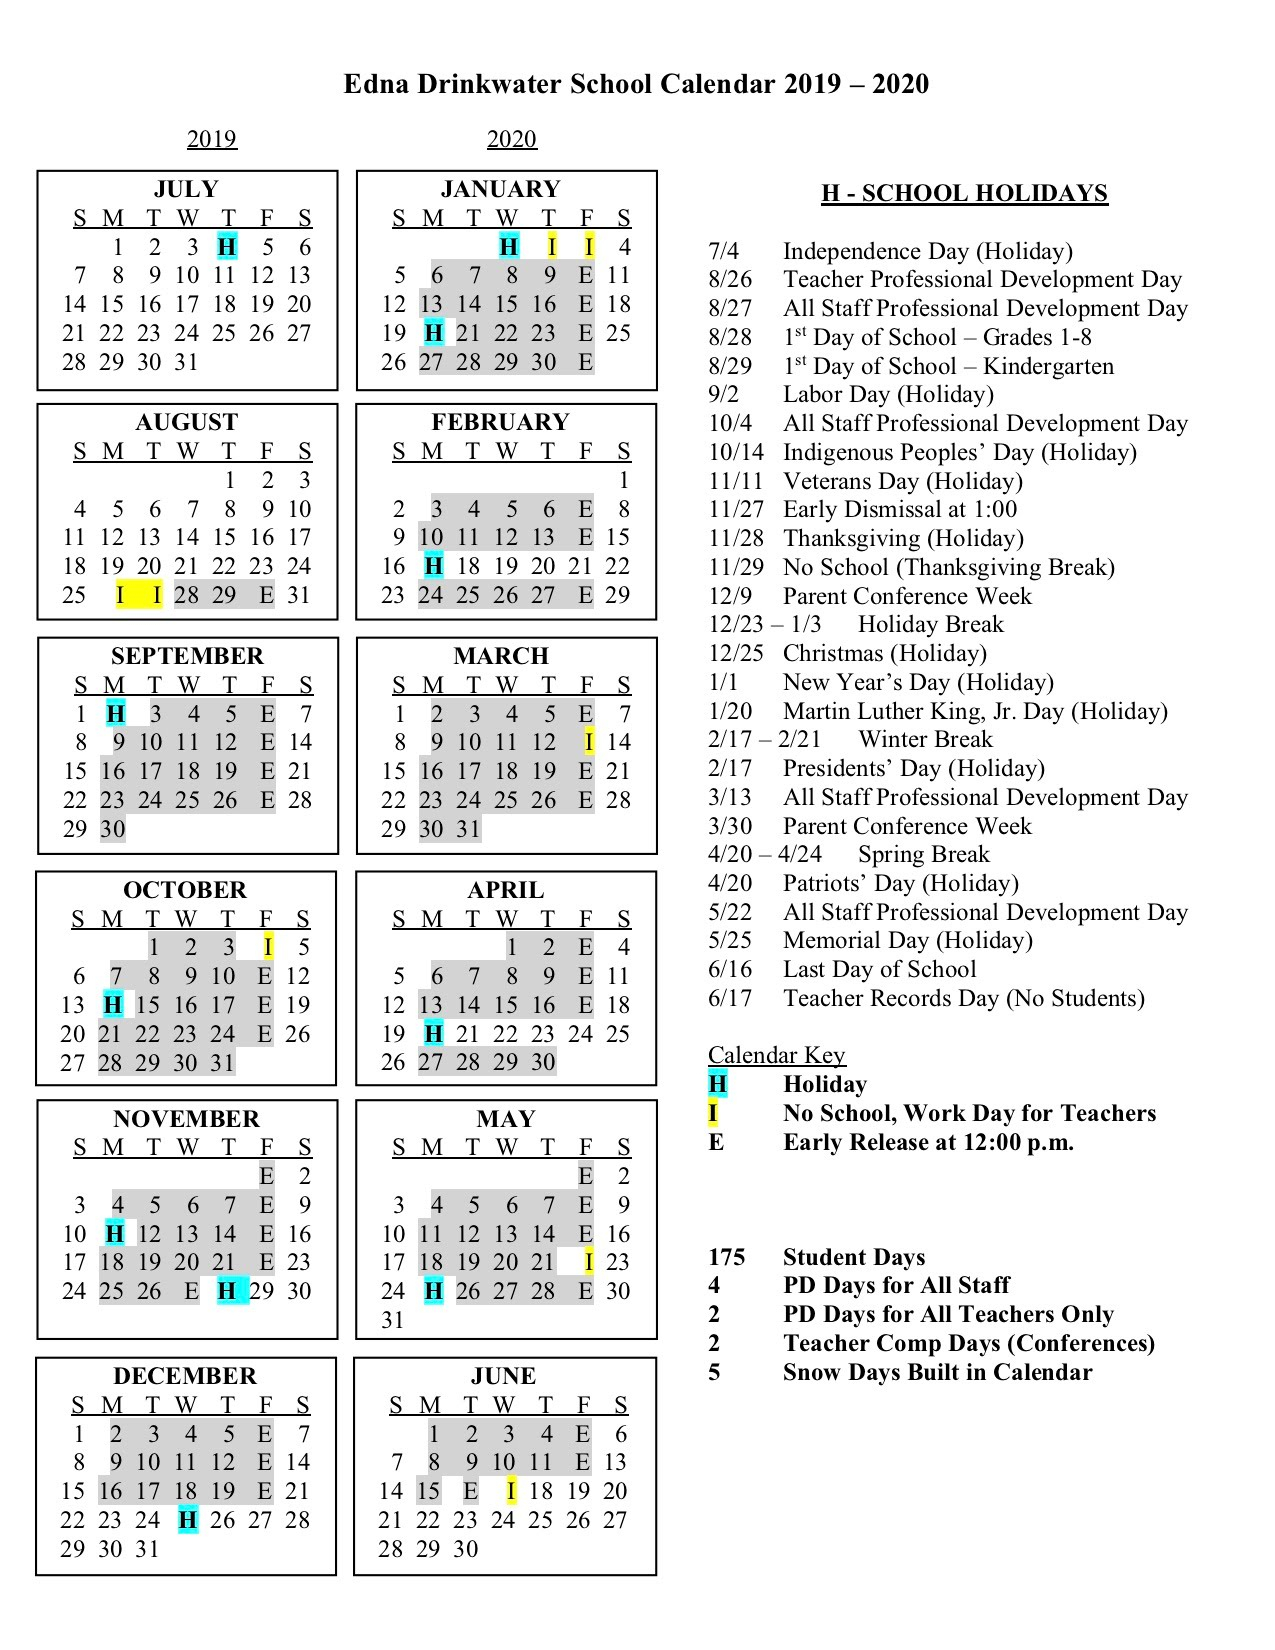 Calendars  Edna Drinkwater School pertaining to Edna Drinkwater School